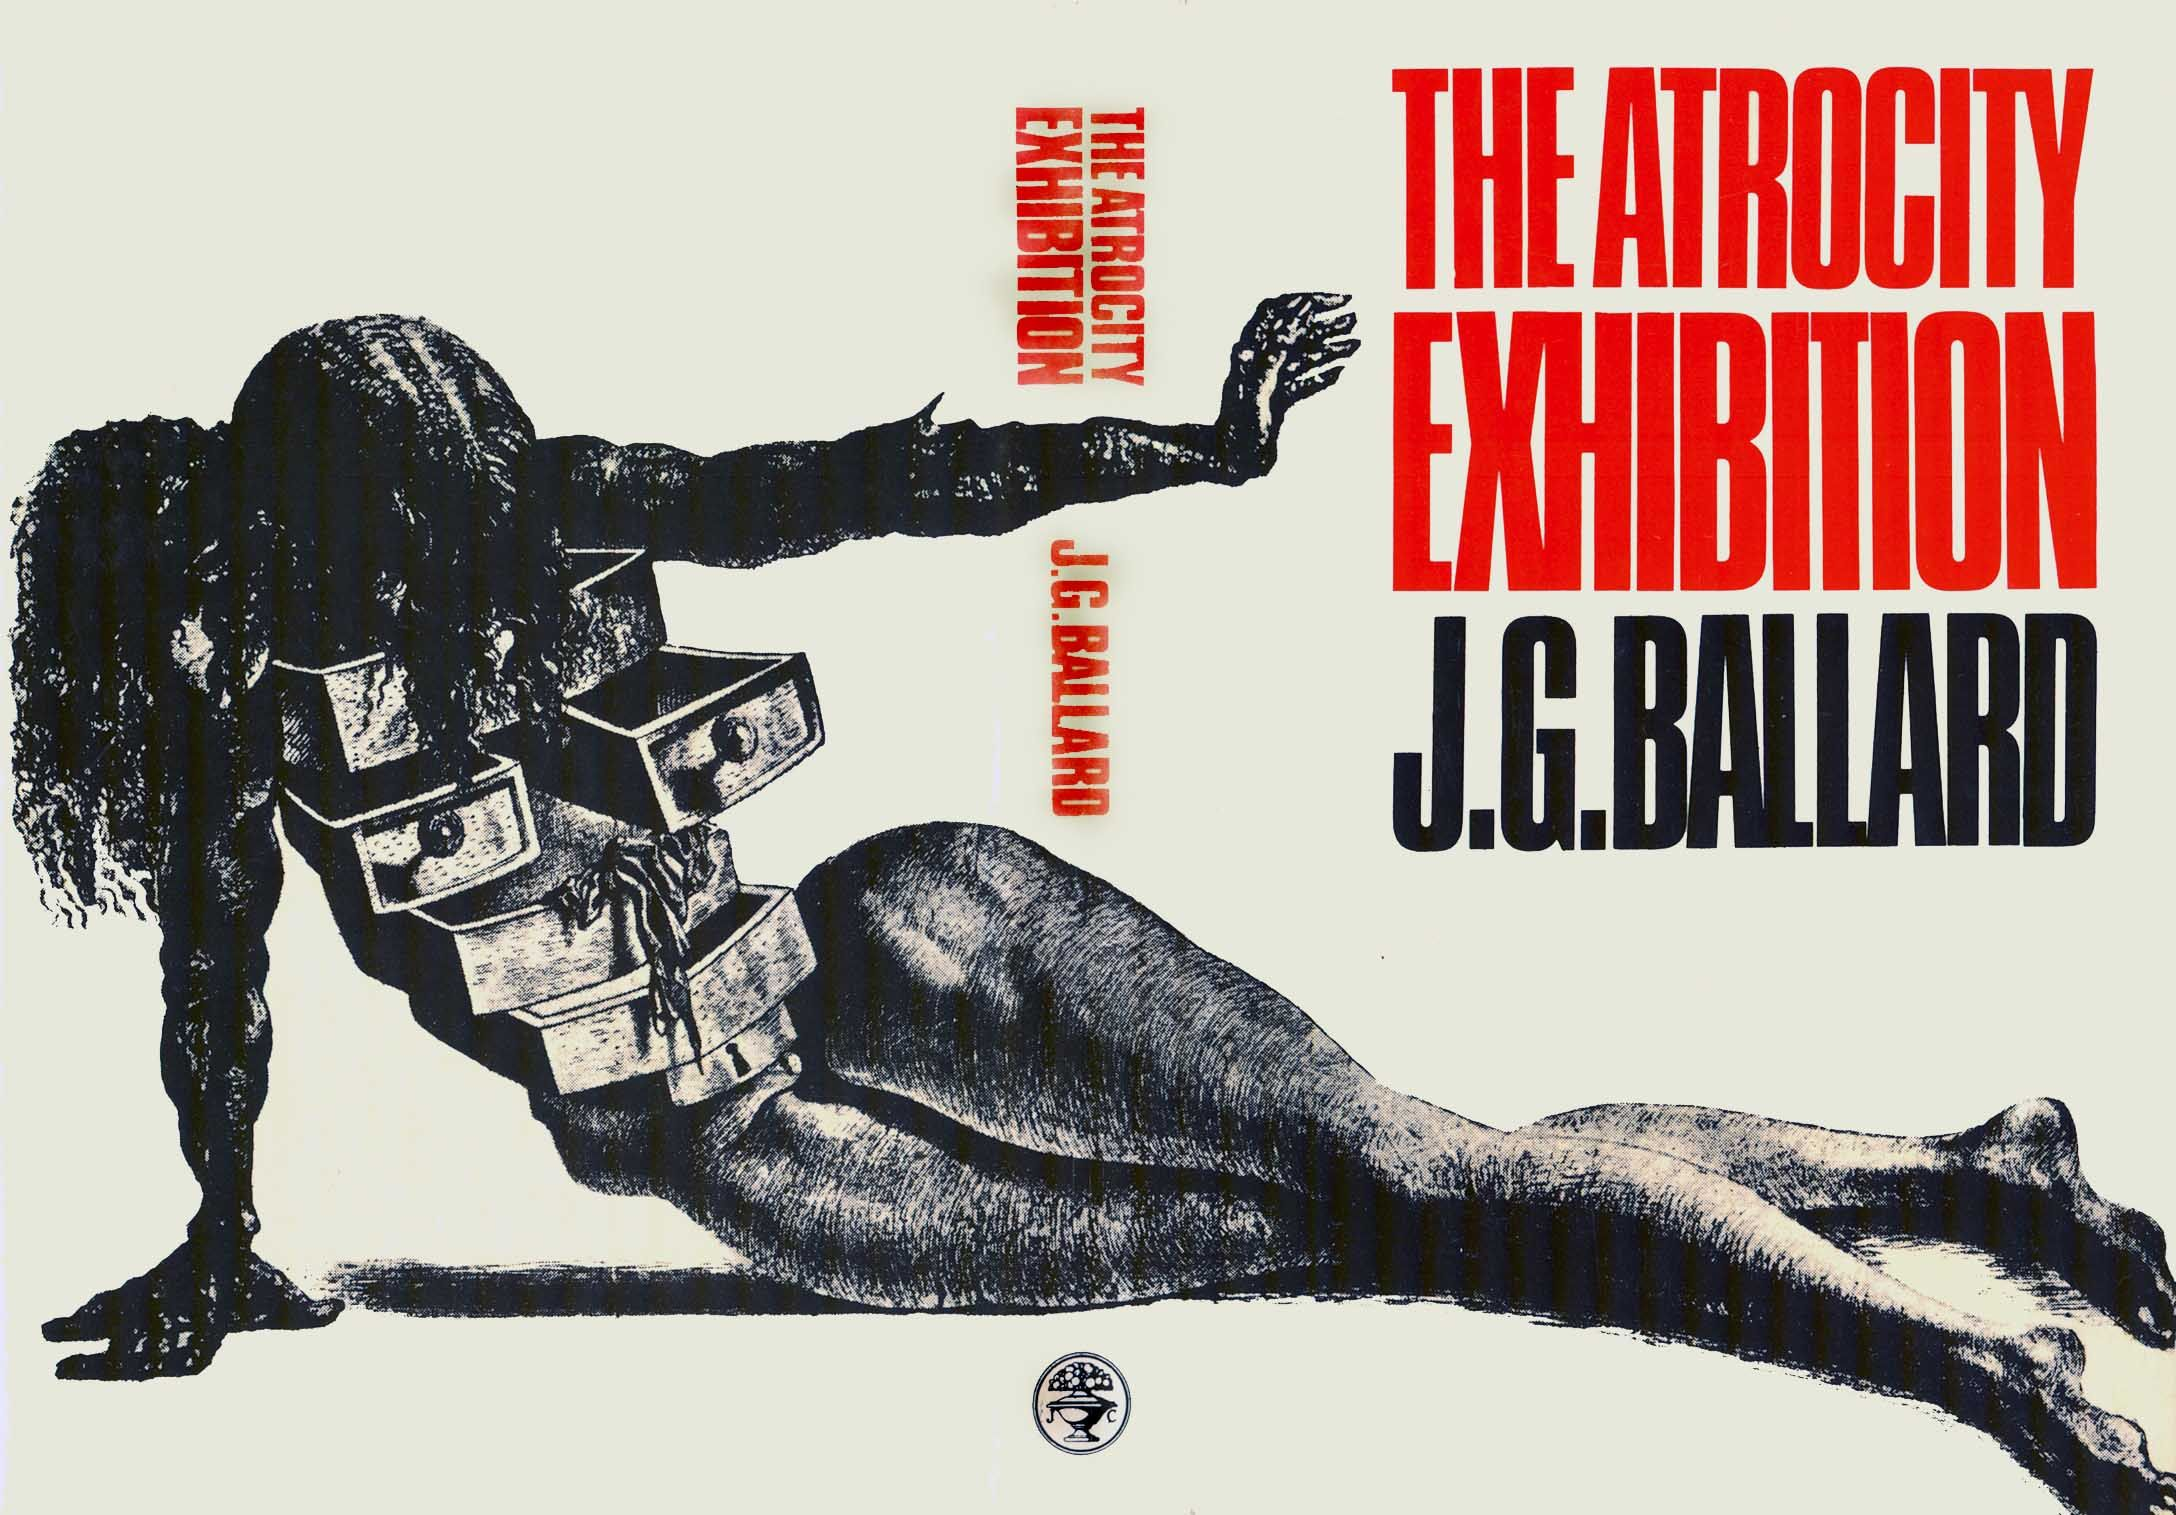 Cover of First UK Edition of The Atrocity Exhibition-J.G Ballard 1970-Based on Salvador Dali